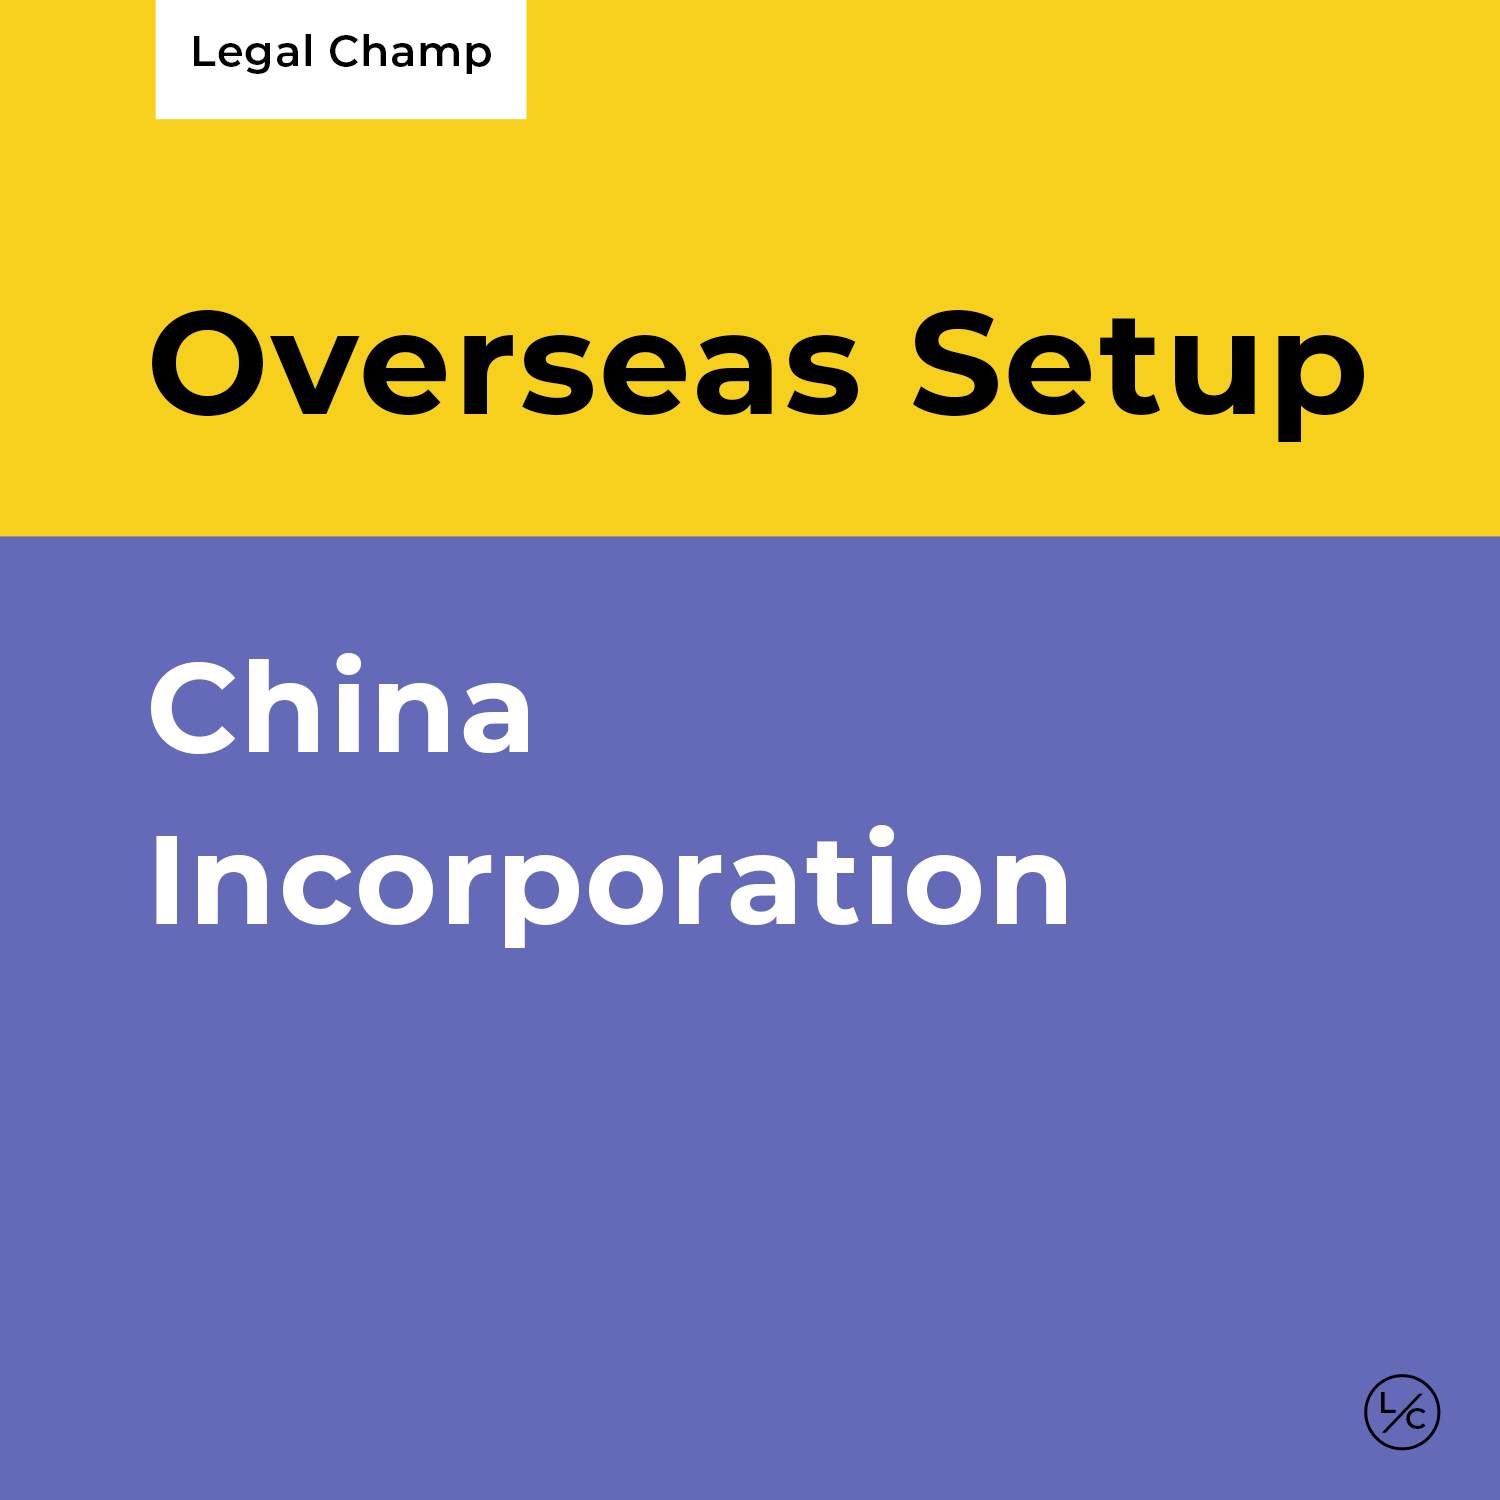 China Incorporation